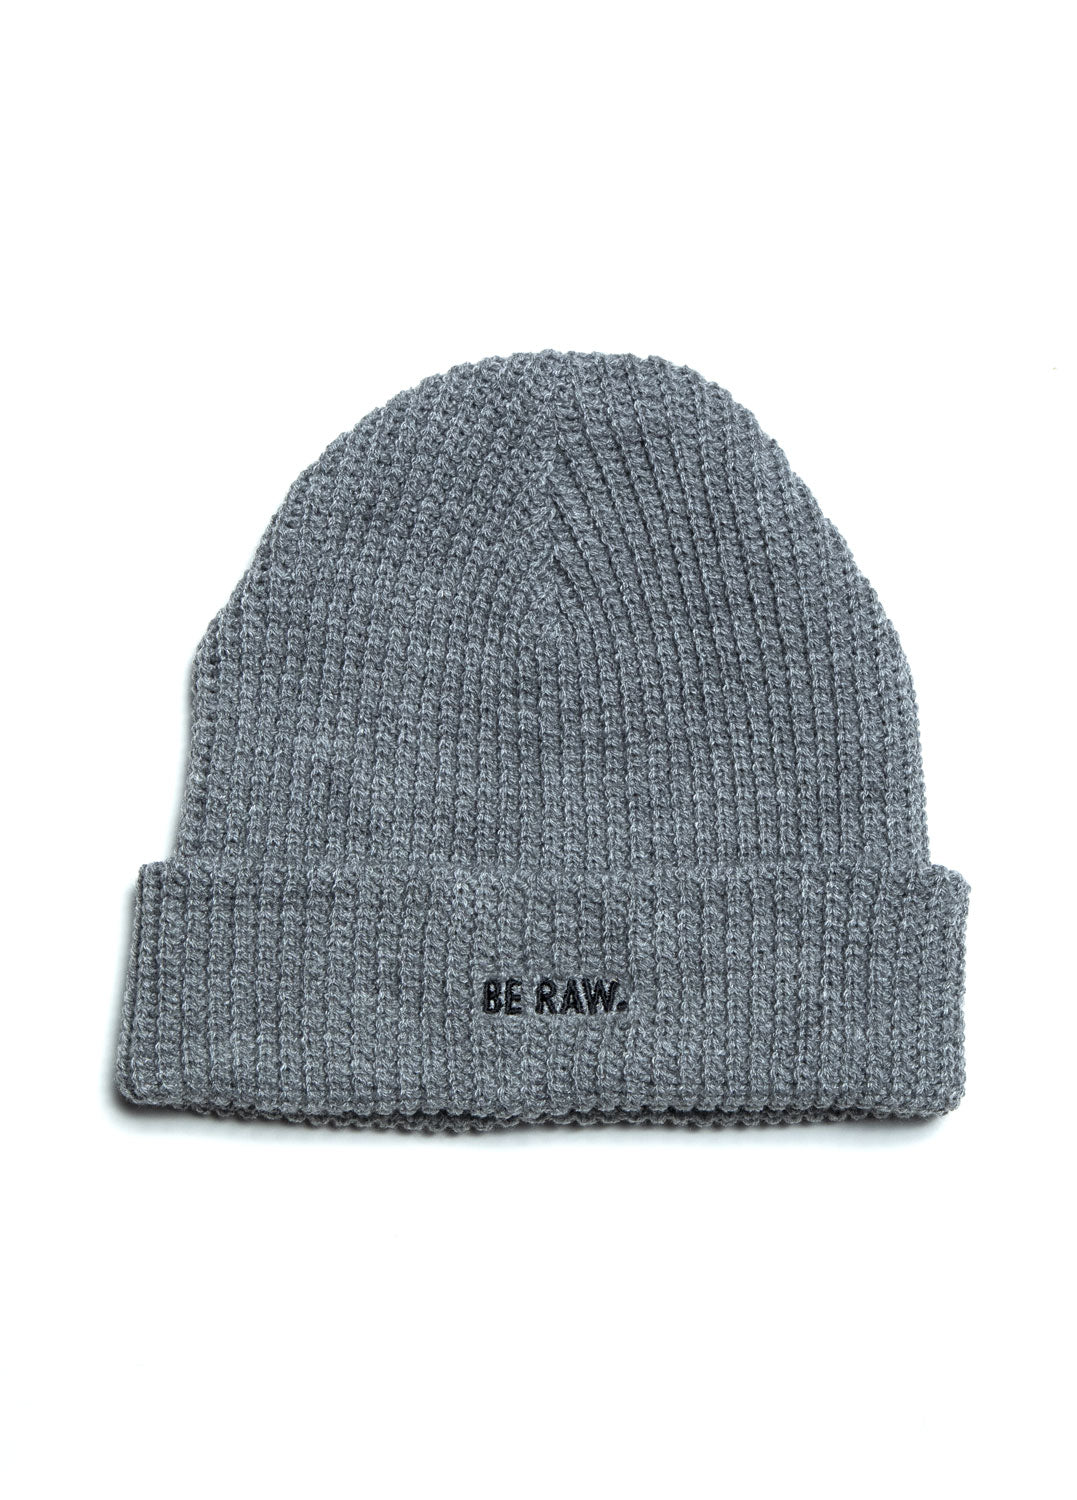 Micro - Be You Be Raw logo - Beanie